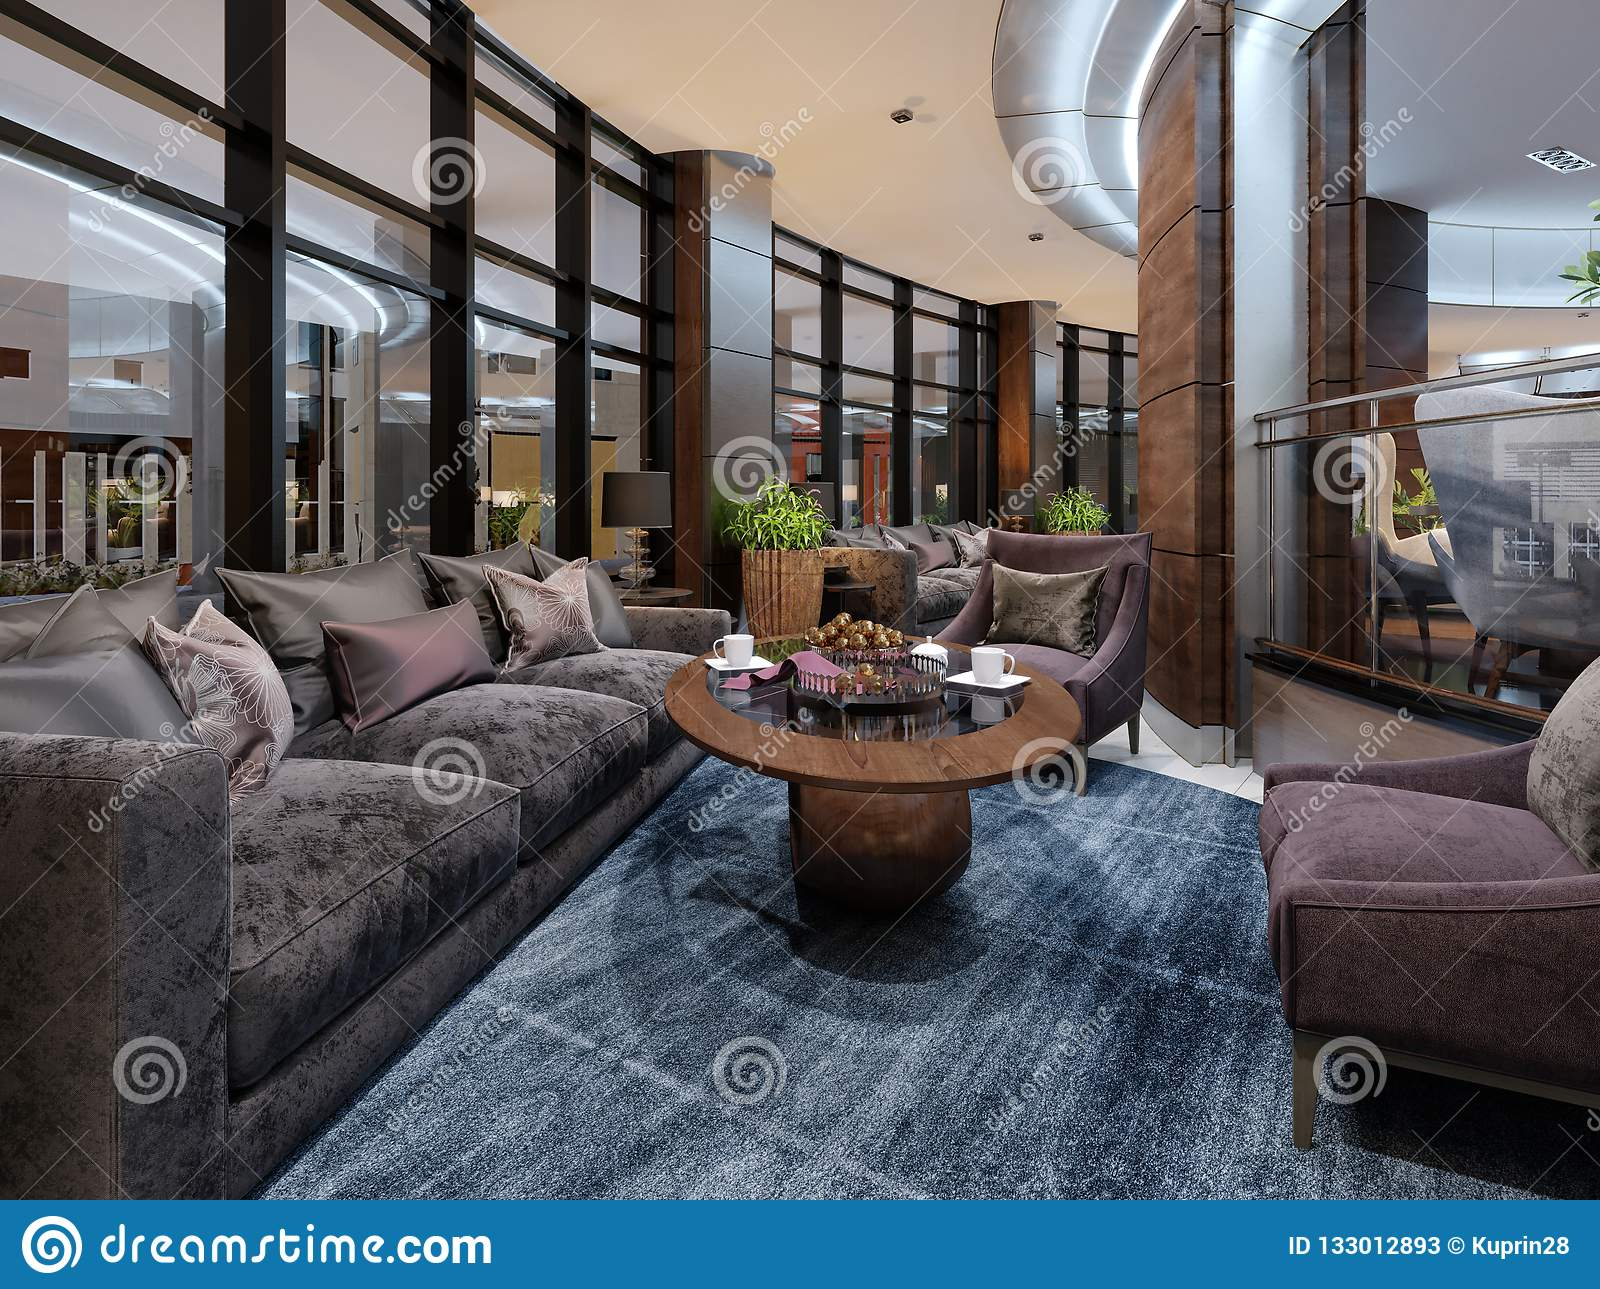 Contemporary Hotel Interior Design Hotel Lobby Rest Area With